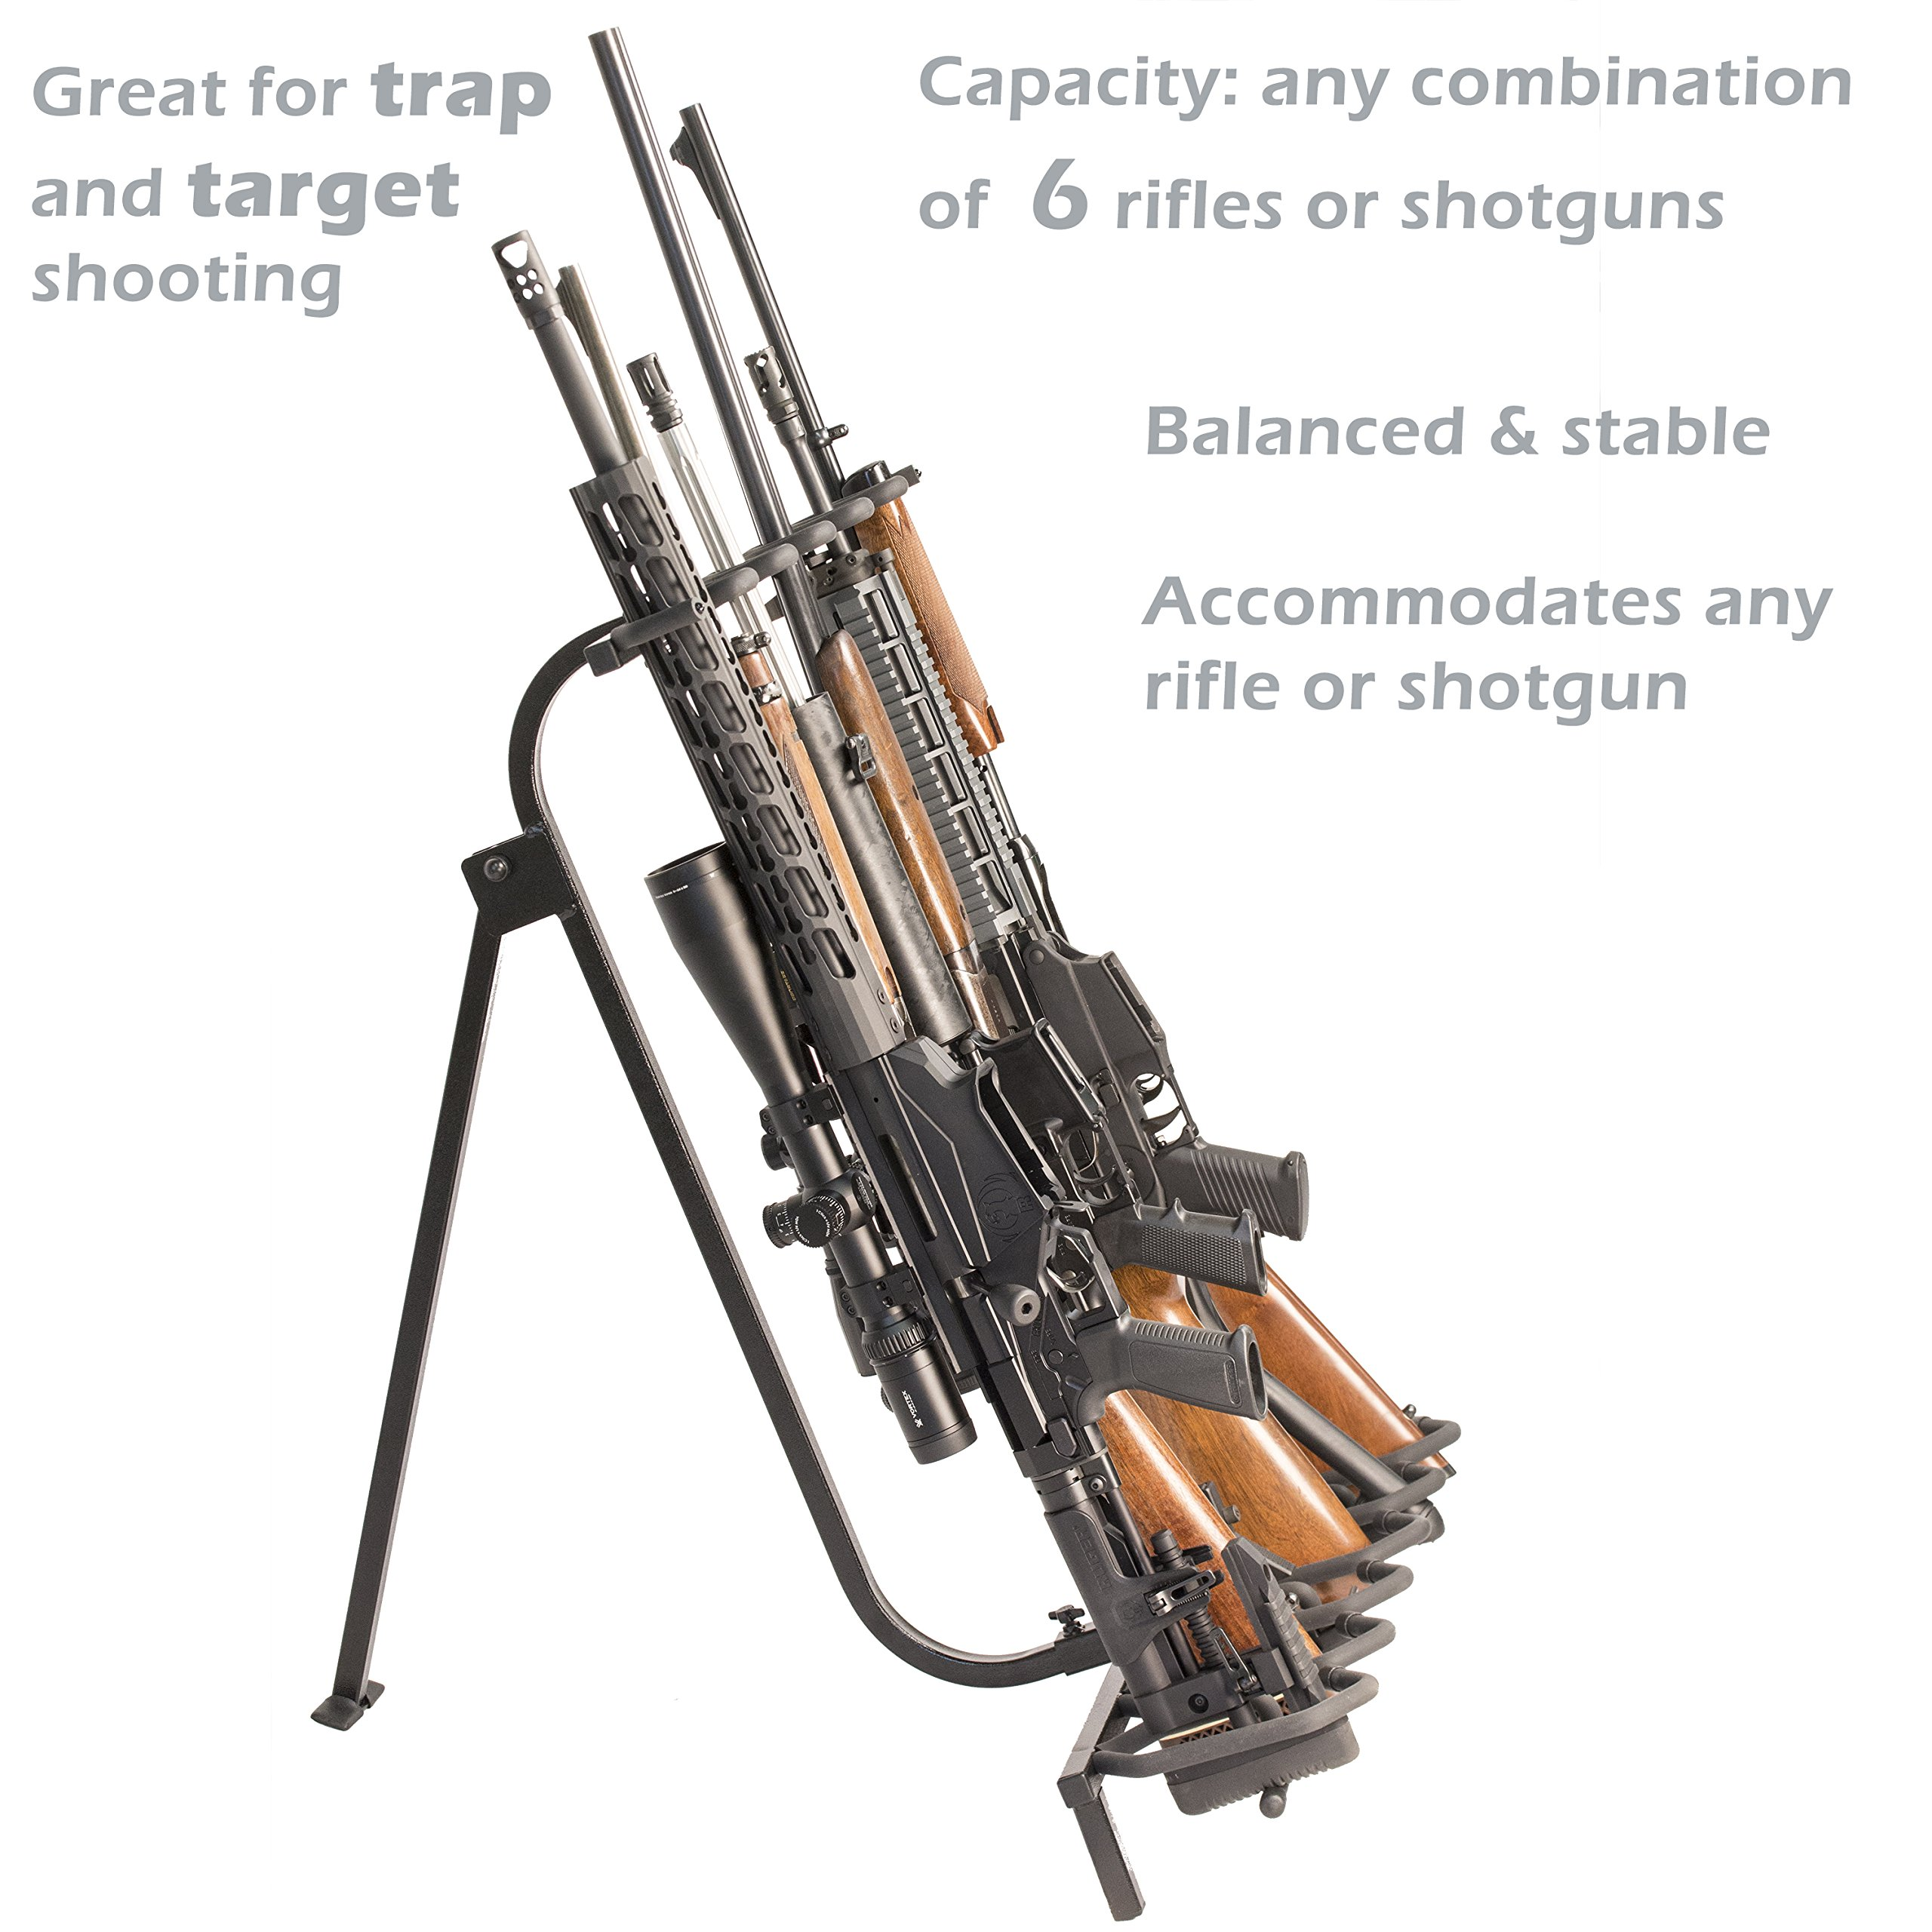 Hold Up Displays Portable Gun Rack and Bow Holder - Tactical Freestanding Folding Firearm Stand Holds Any Rifle or Bow - Keeps Guns Organized at The Shooting Range - Made in USA with Heavy Duty Steel by Hold Up Displays (Image #3)